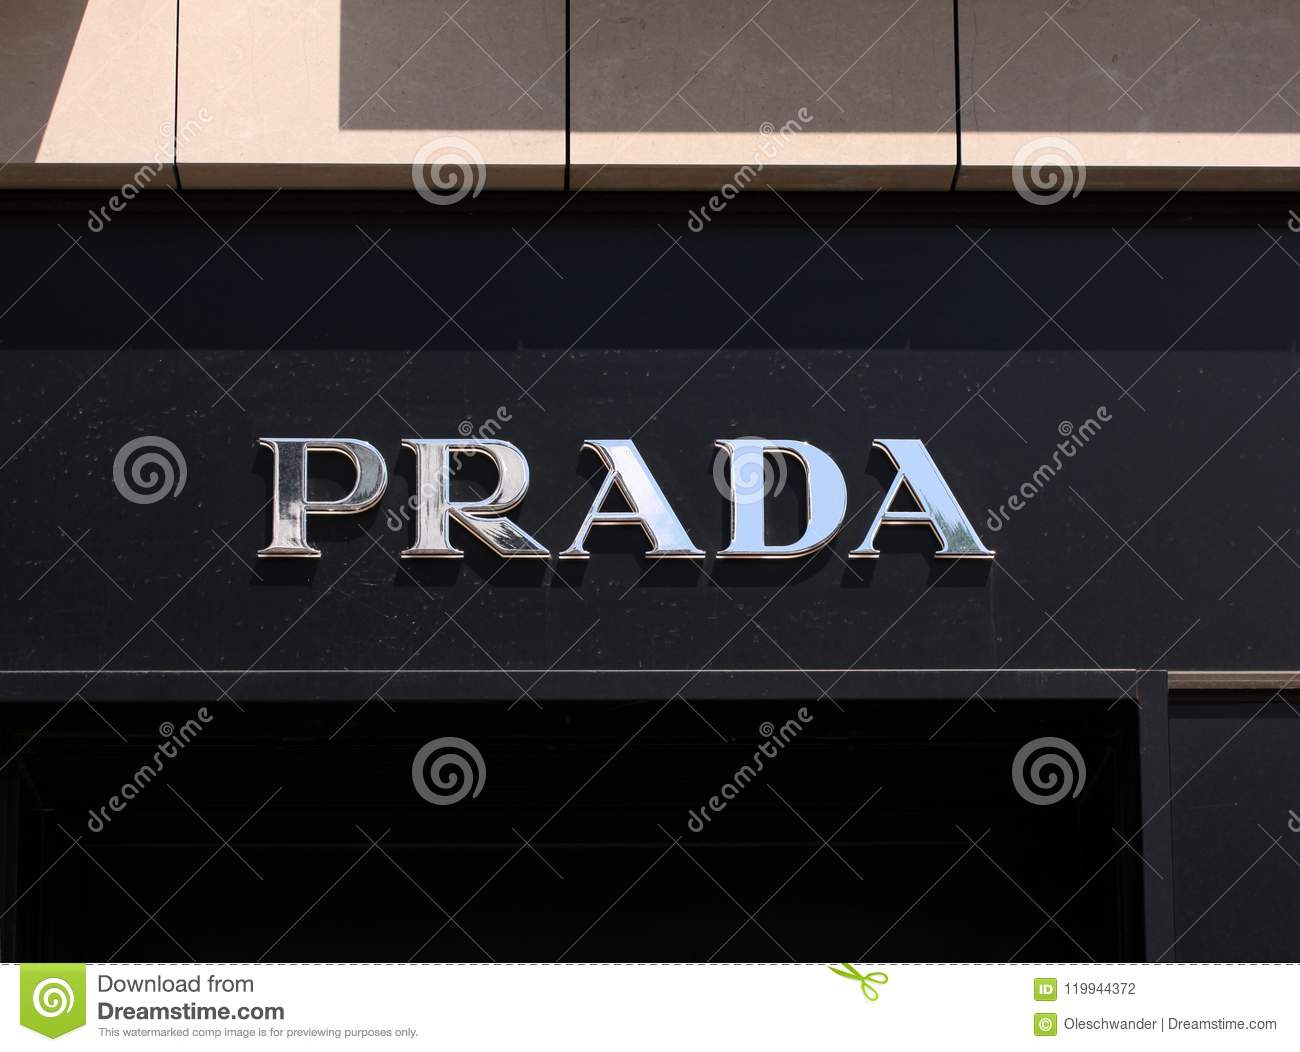 Prada logo on front store in shopping street. Prada is a world famous fashion brand founded in Italy.